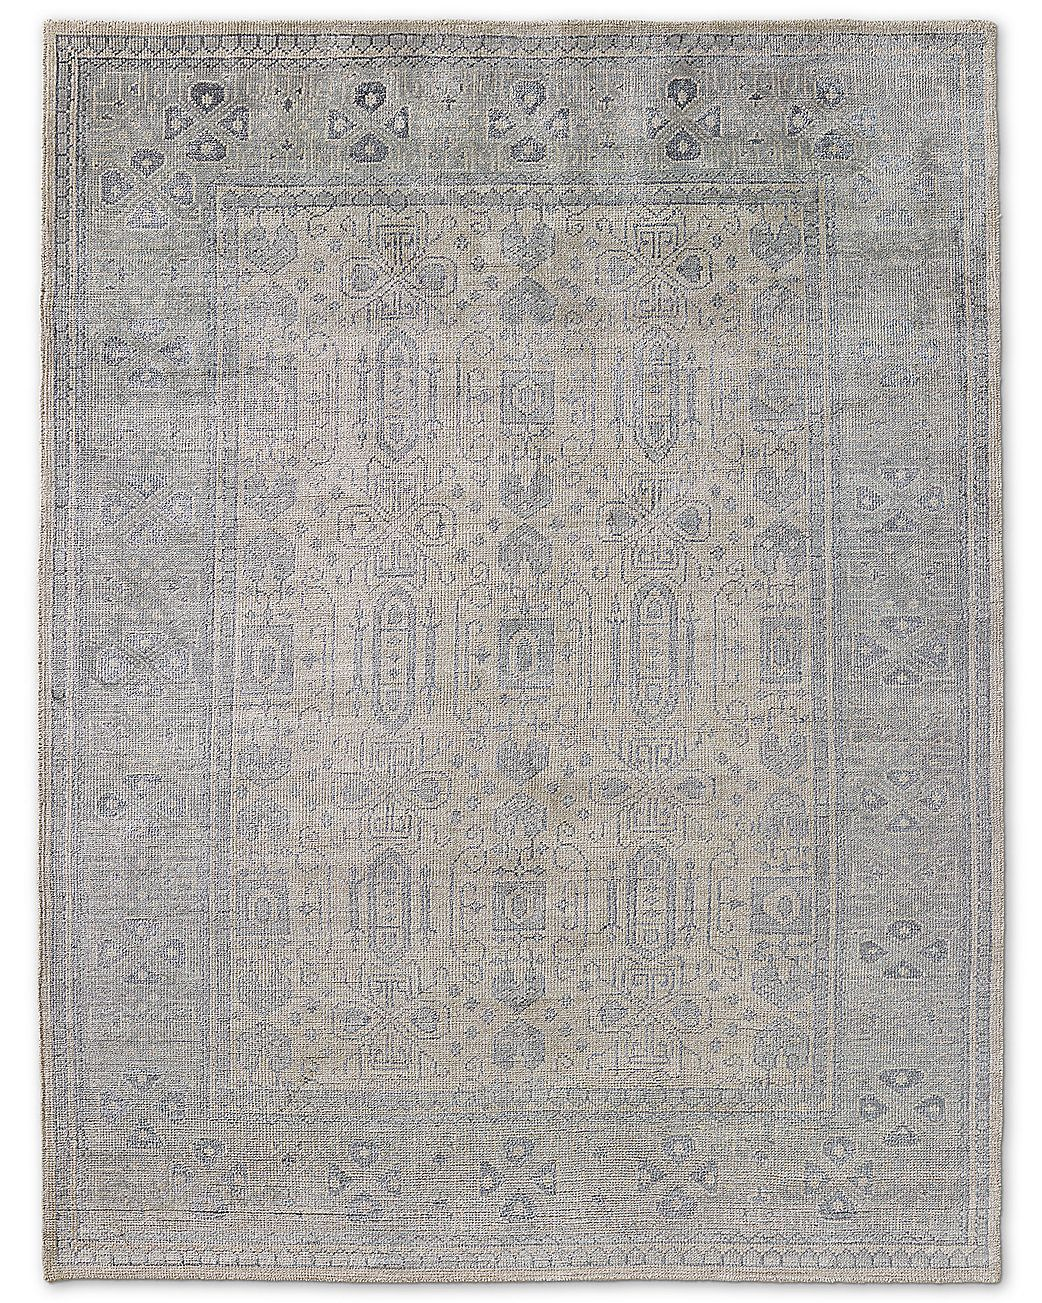 Restoration Hardware Mariposa Rug Blue For Master Bedroom Rugs Pinterest Restoration